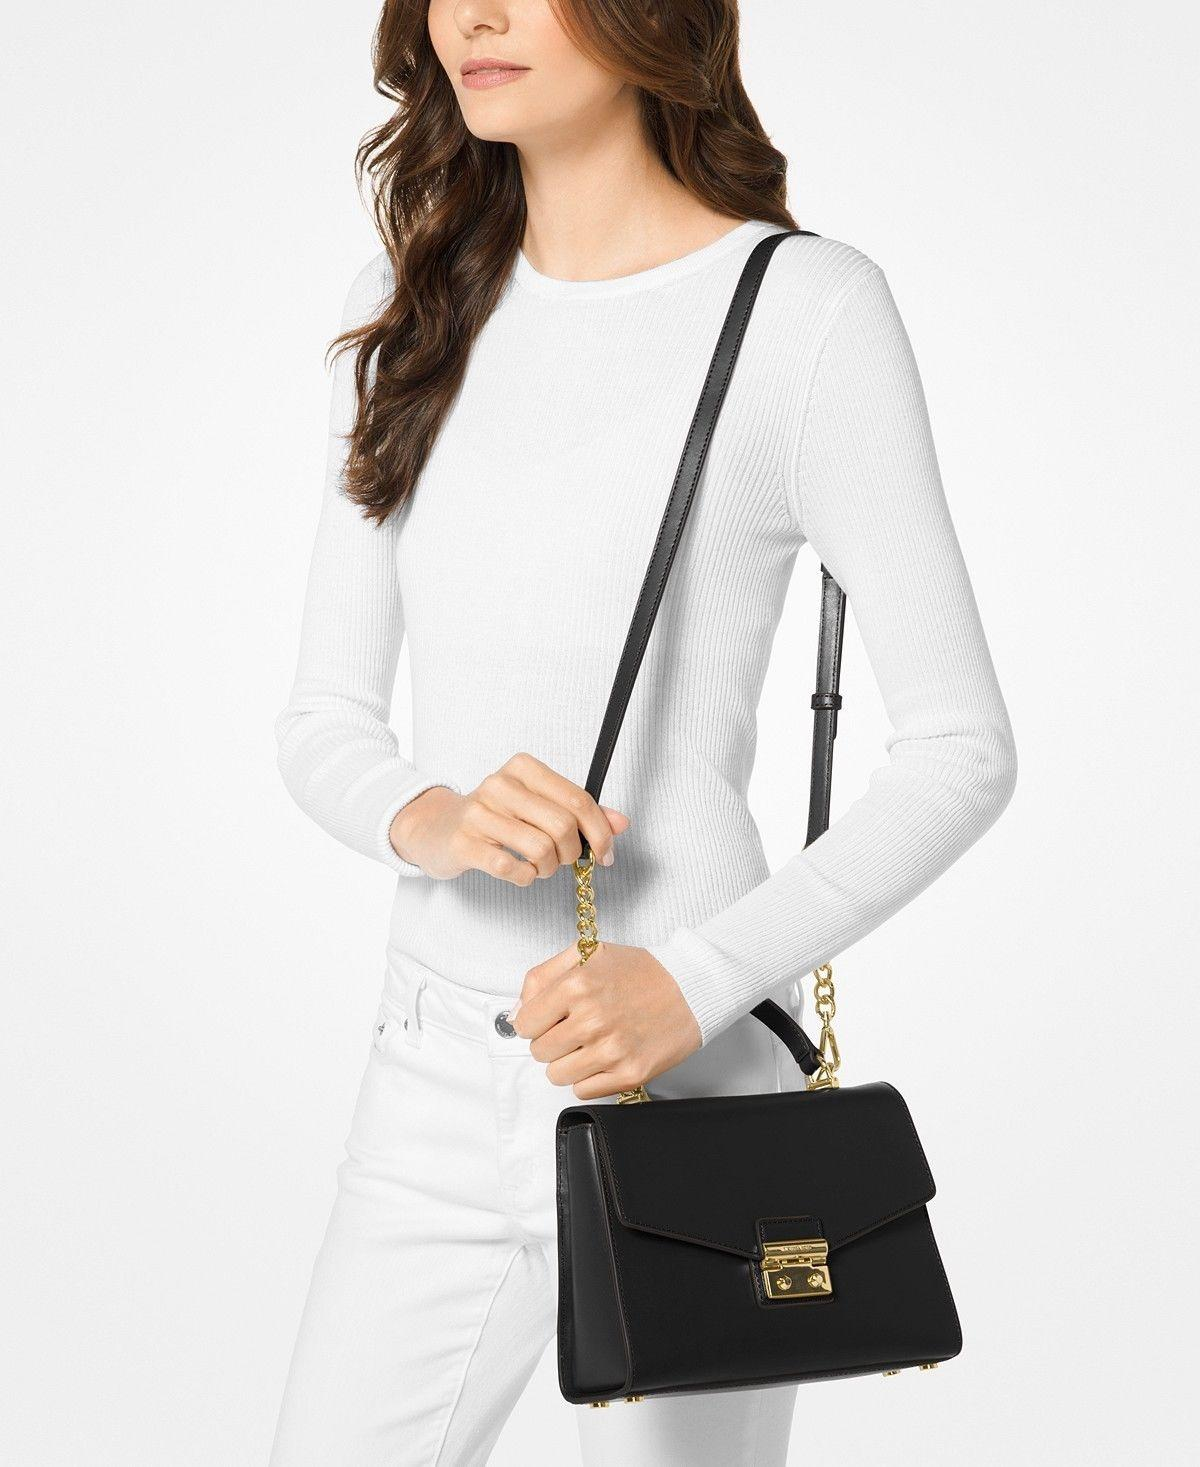 ee4986ee67a3 ... top quality michael kors sloan medium black leather satchel tradesy  de5ba 0df1c